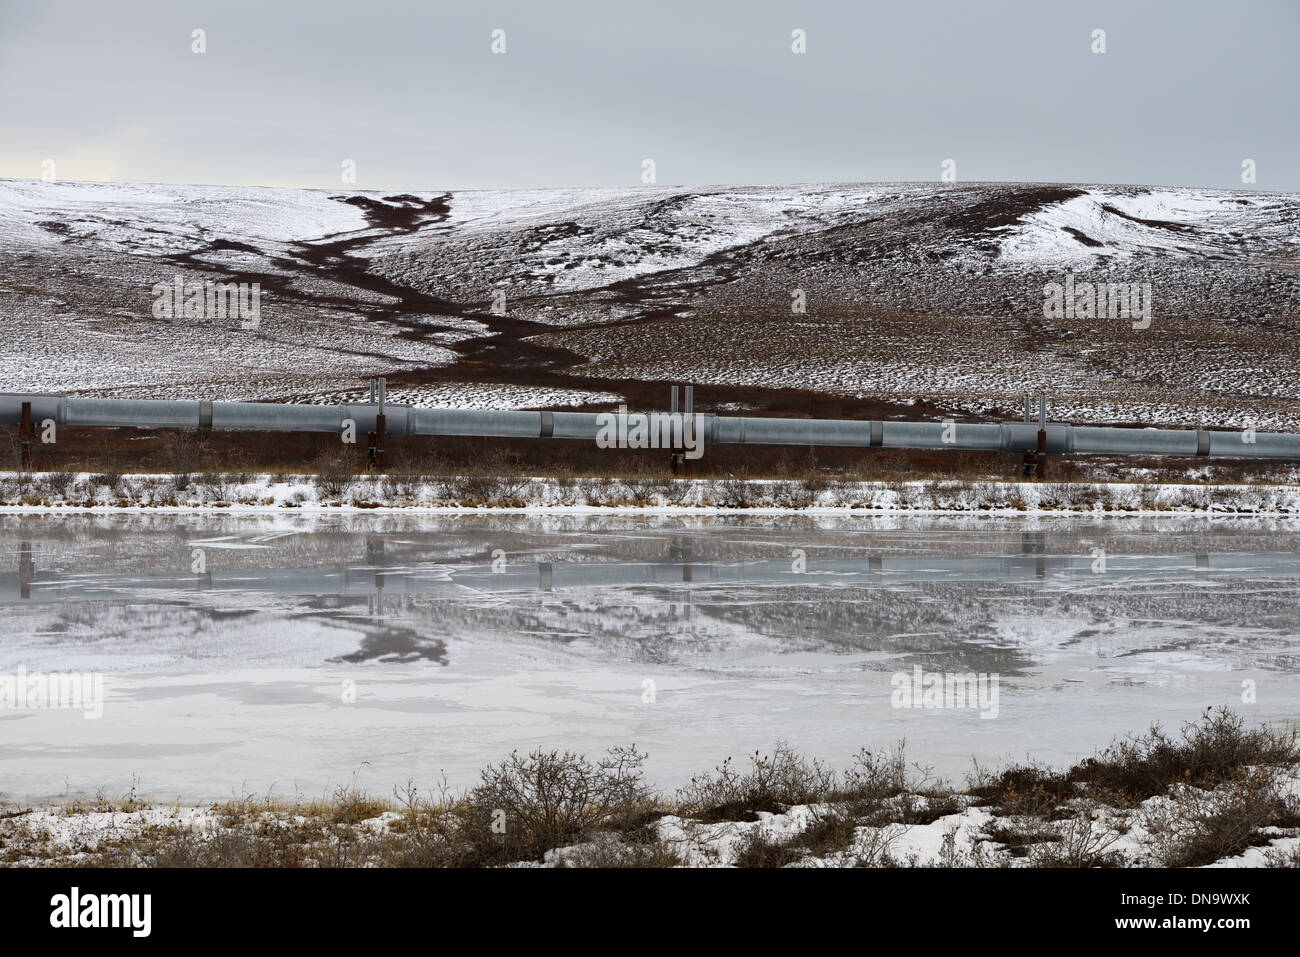 Alyeska elevated Trans Alaska crude oil pipeline passing hills and pond north of the Brooks Range mountains from the Dalton Highway Alaska USA - Stock Image